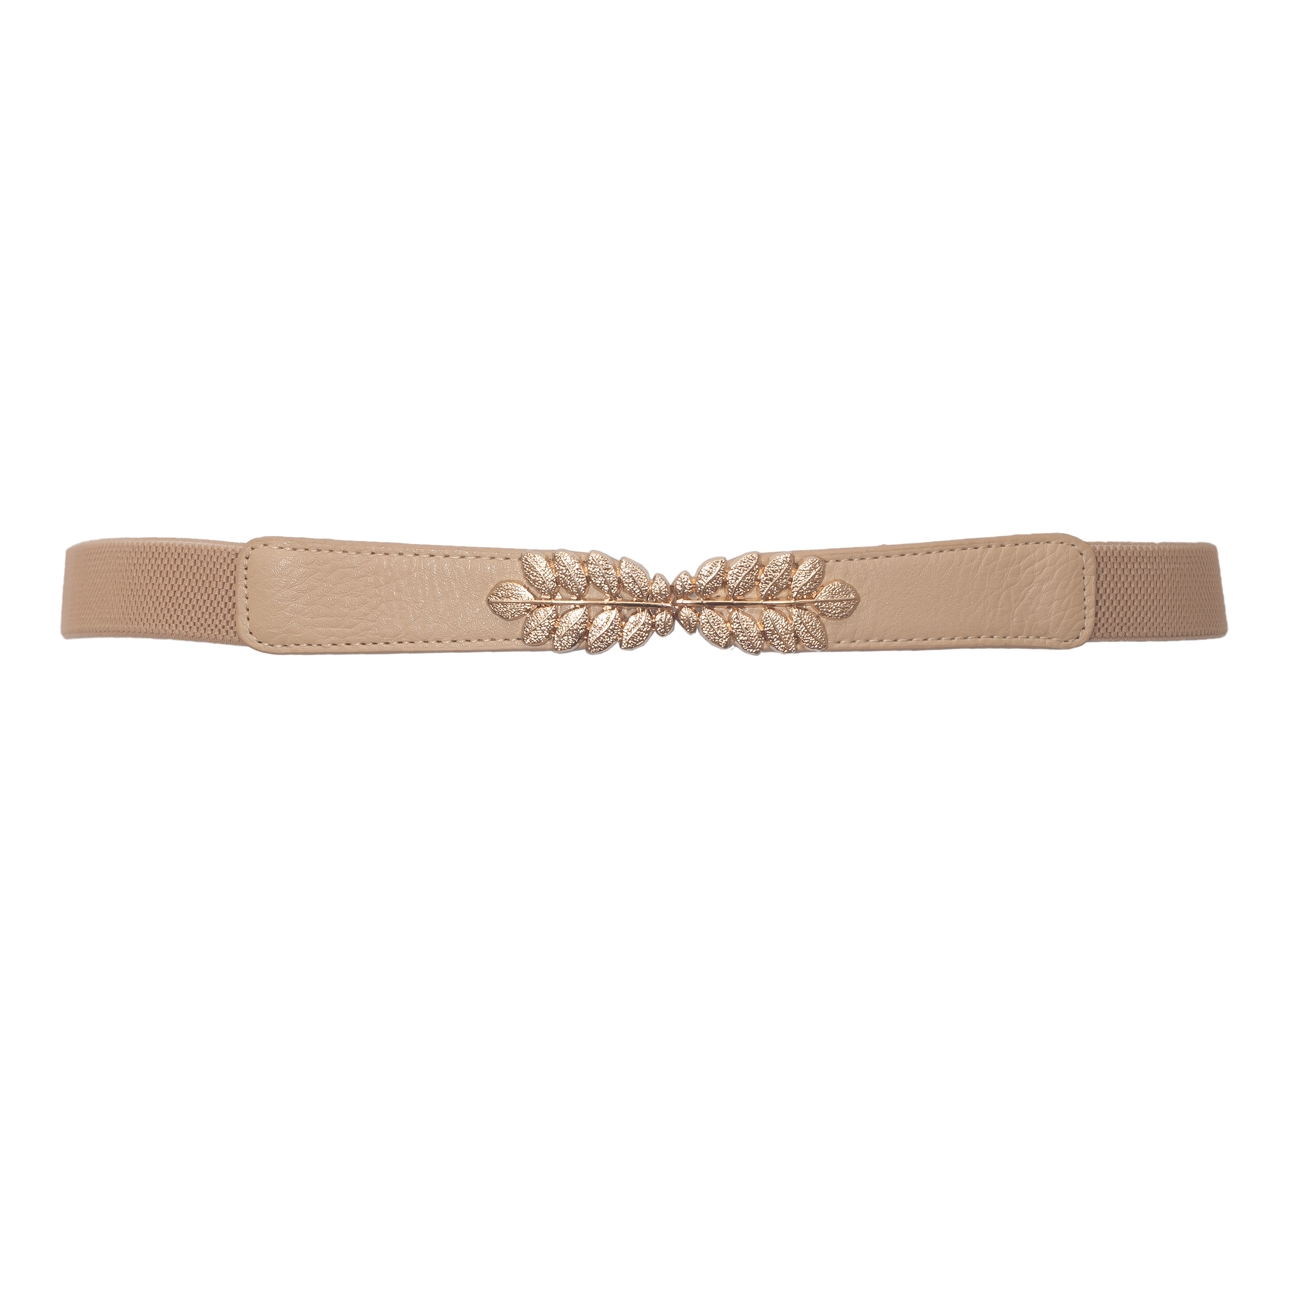 Plus size Leaf Interlocking Buckle Elastic Belt Khaki